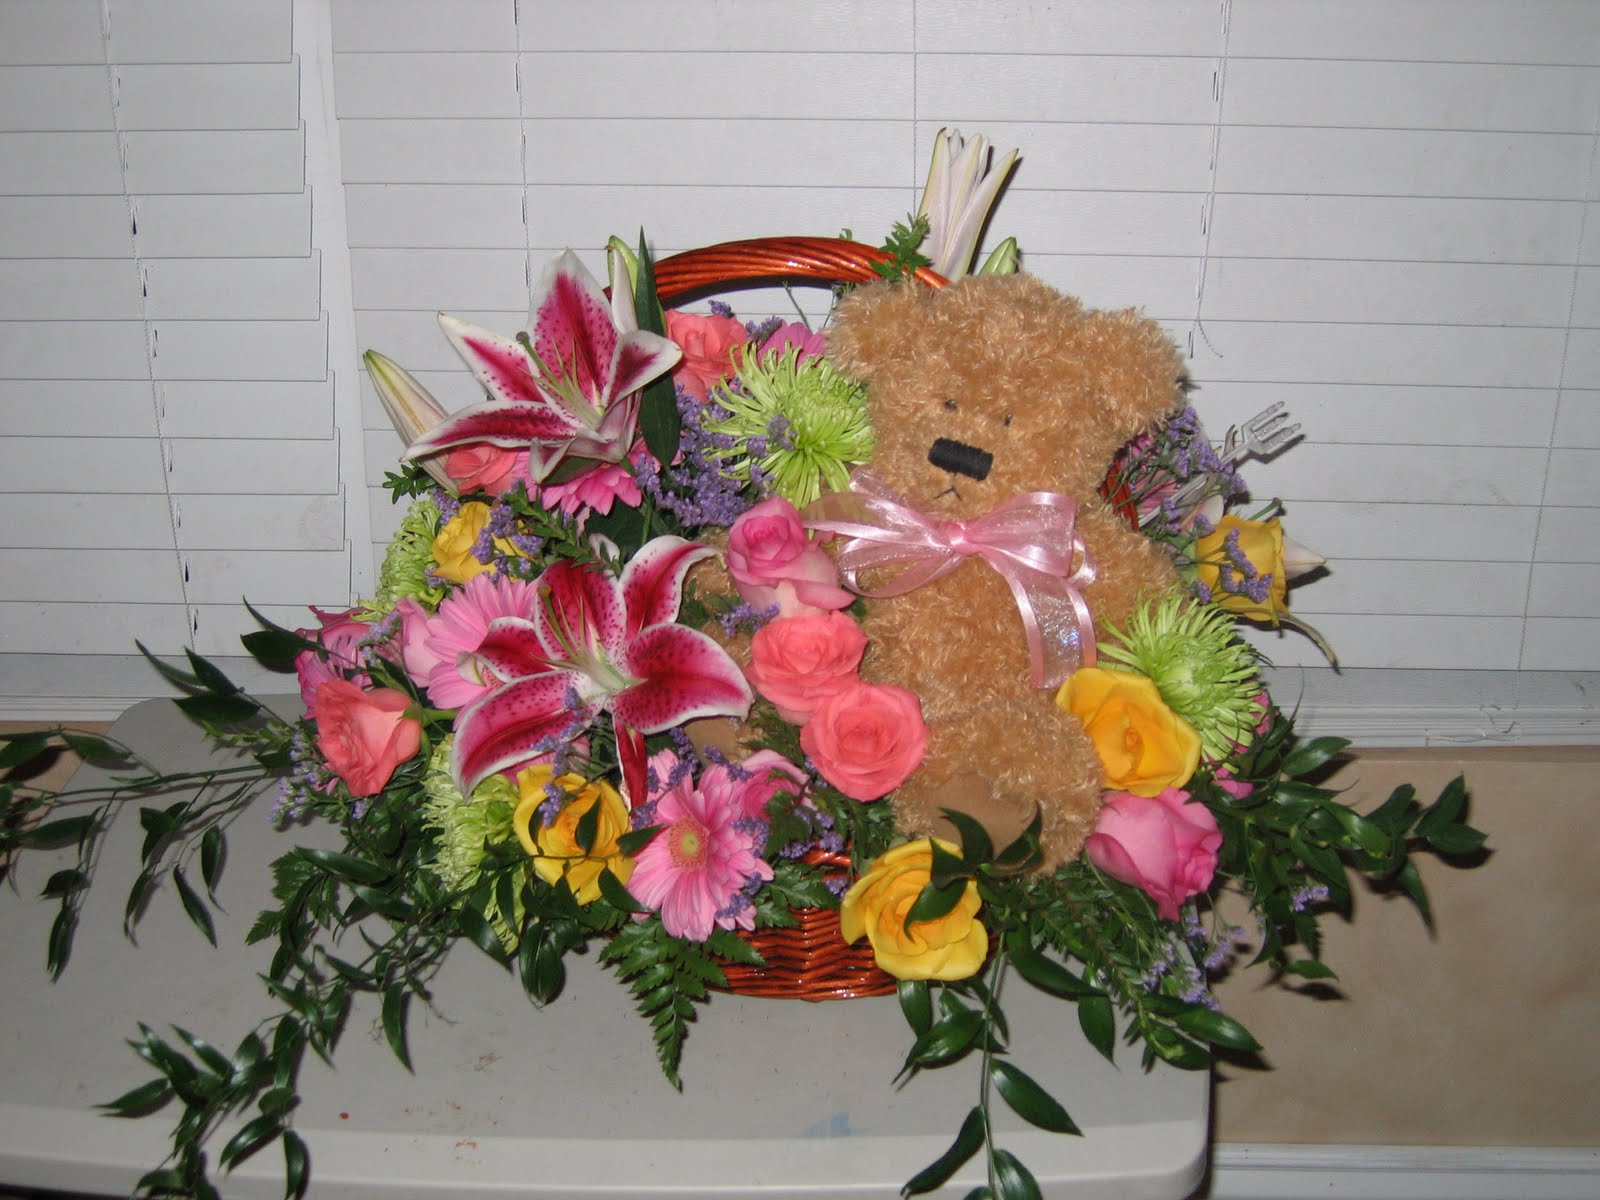 Winterbottom family happy birthday to our little angel after the flowers started wilting i did not know what to do with the basket and bear do i put the bear on sharyns grave or keep it izmirmasajfo